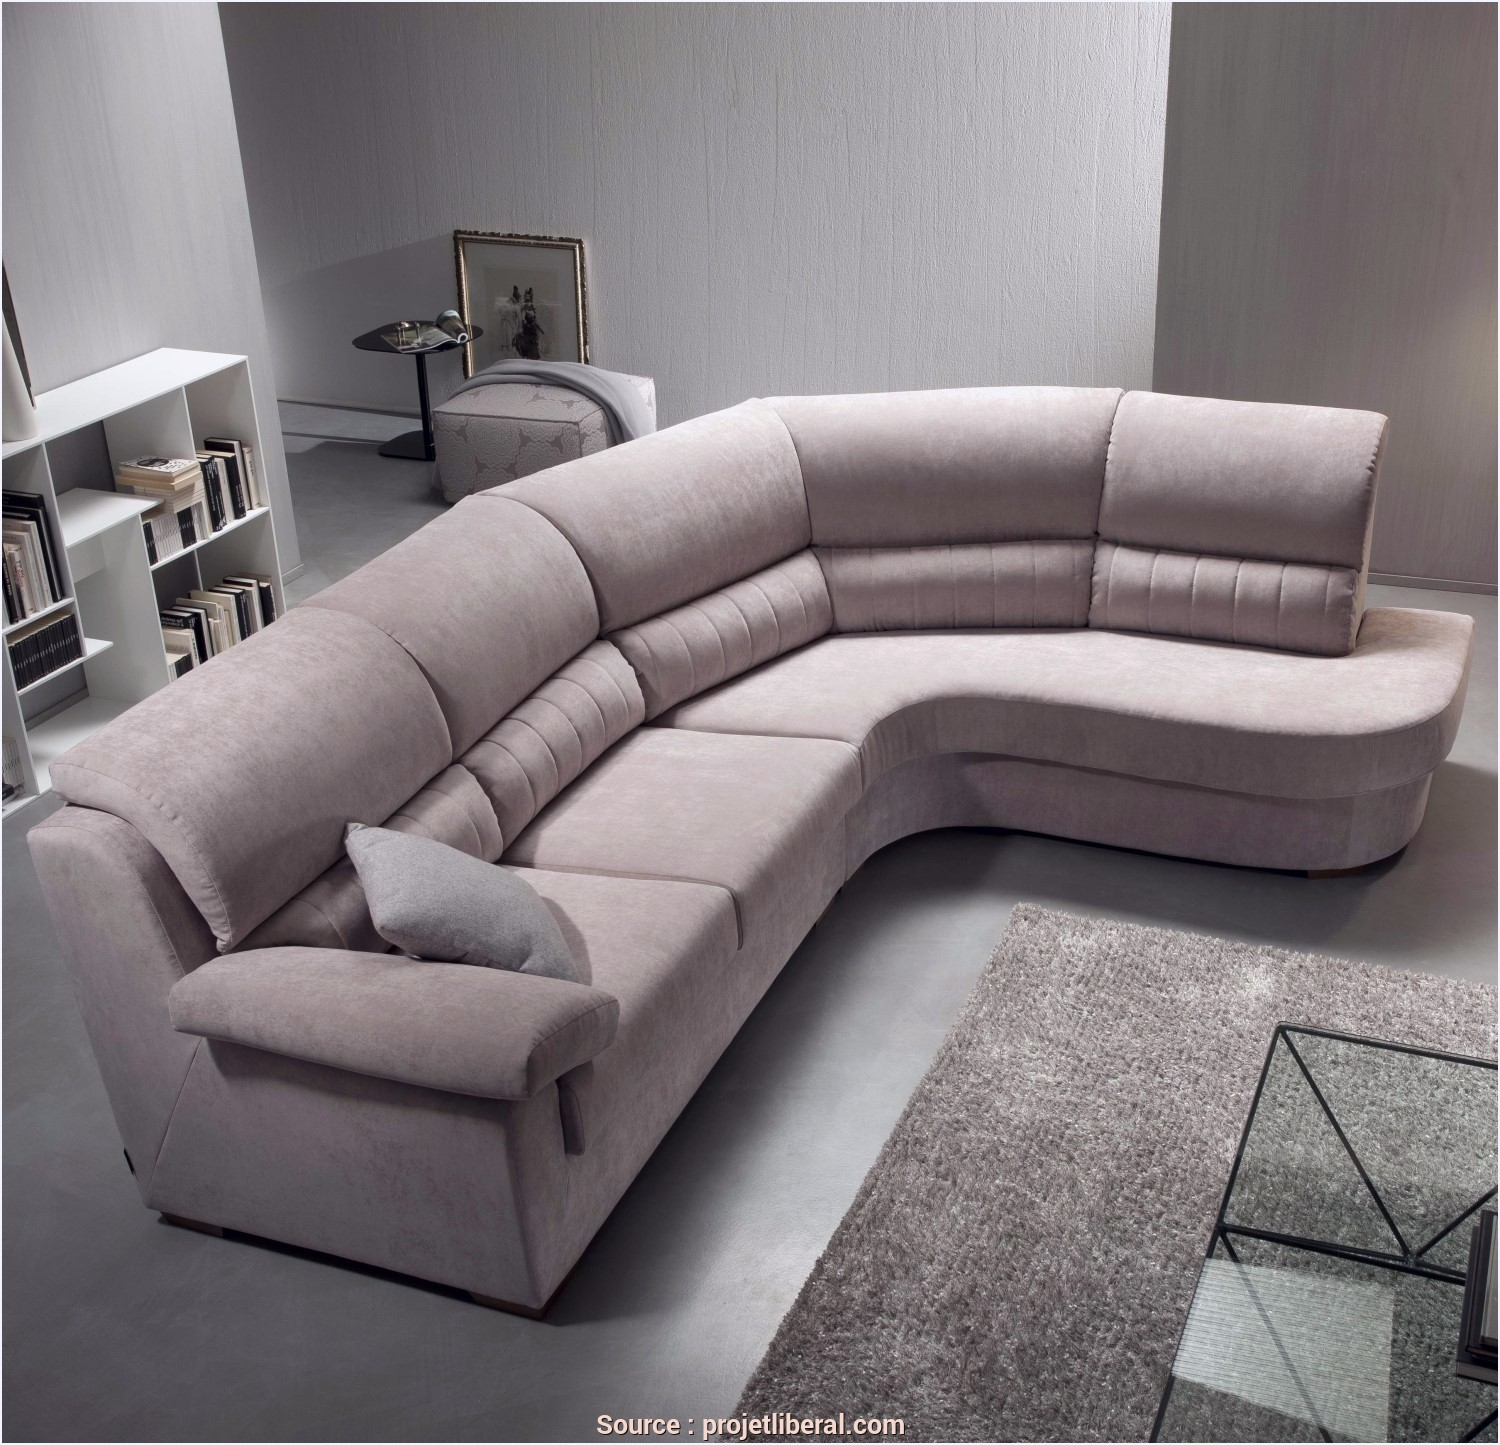 Loveable 6 Divano Sofa In Offerta - Jake Vintage